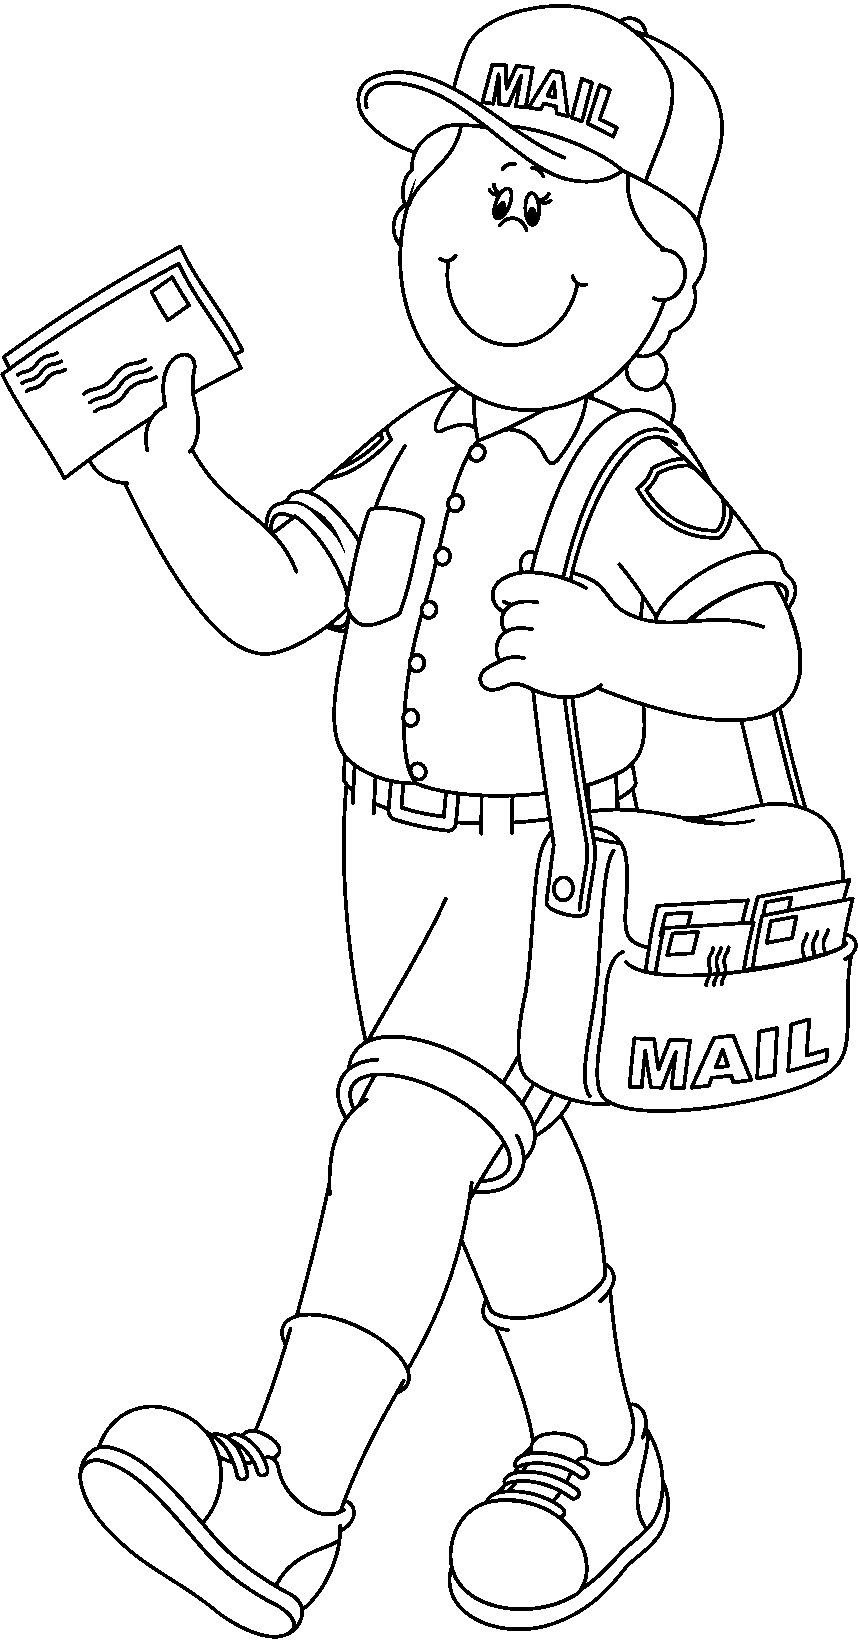 Community Helpers Coloring Page Worksheets & Teaching Resources | TpT | 1642x858